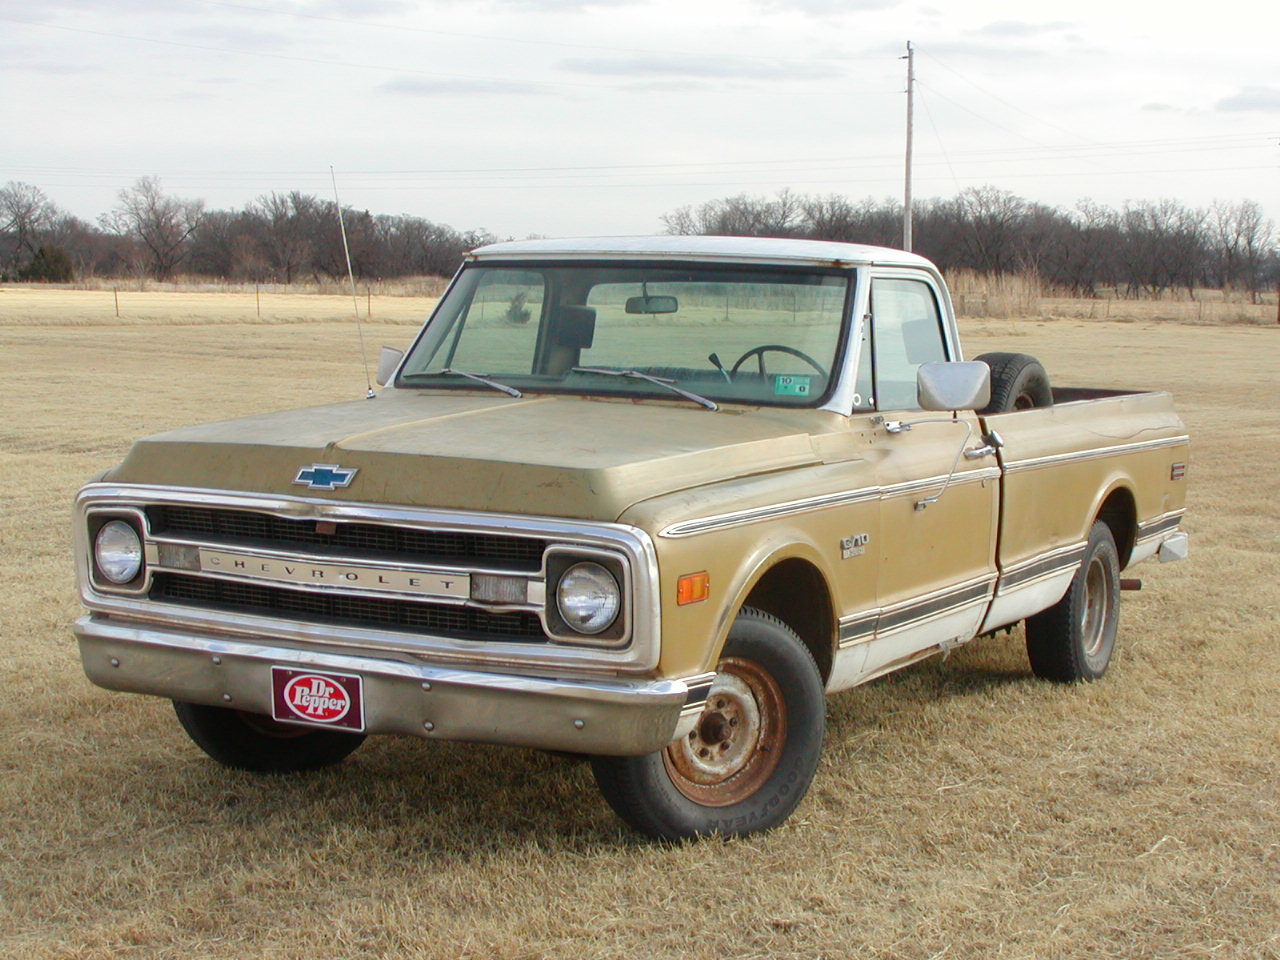 72 chevy pick up clipart black and white image freeuse download The 1970 Truck Page image freeuse download